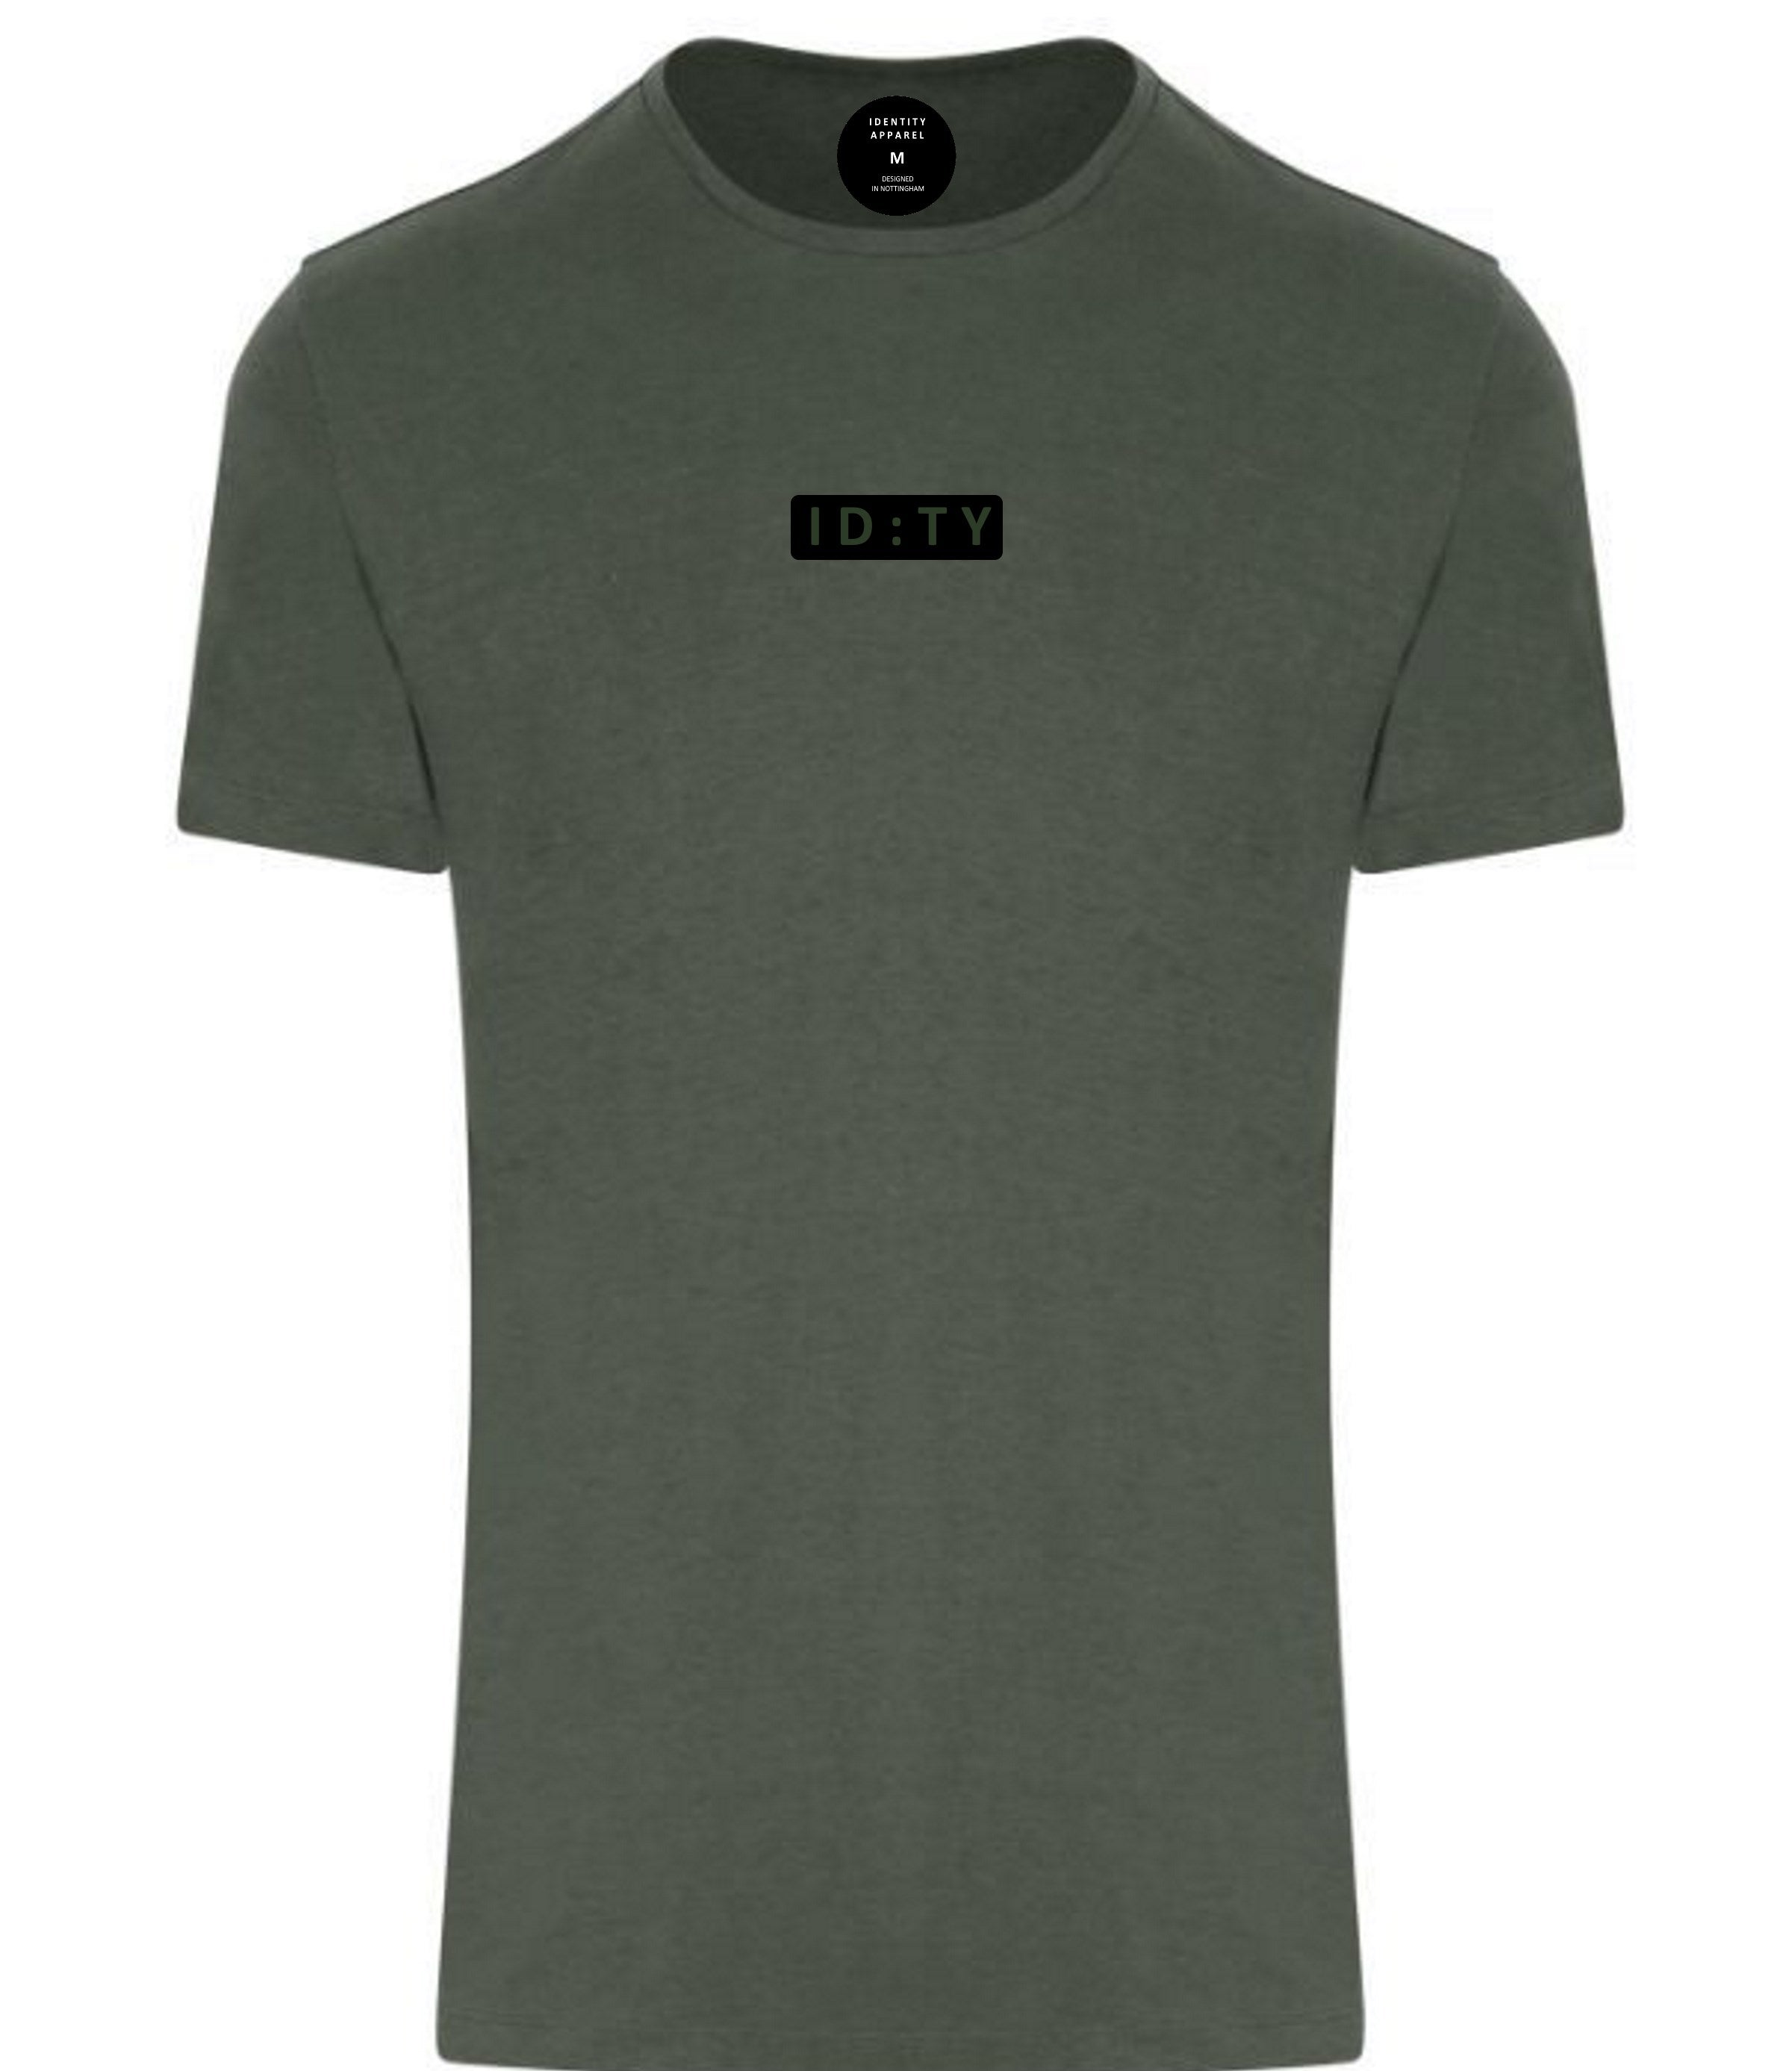 Identity IDTY Fitness T-Shirt (Green)